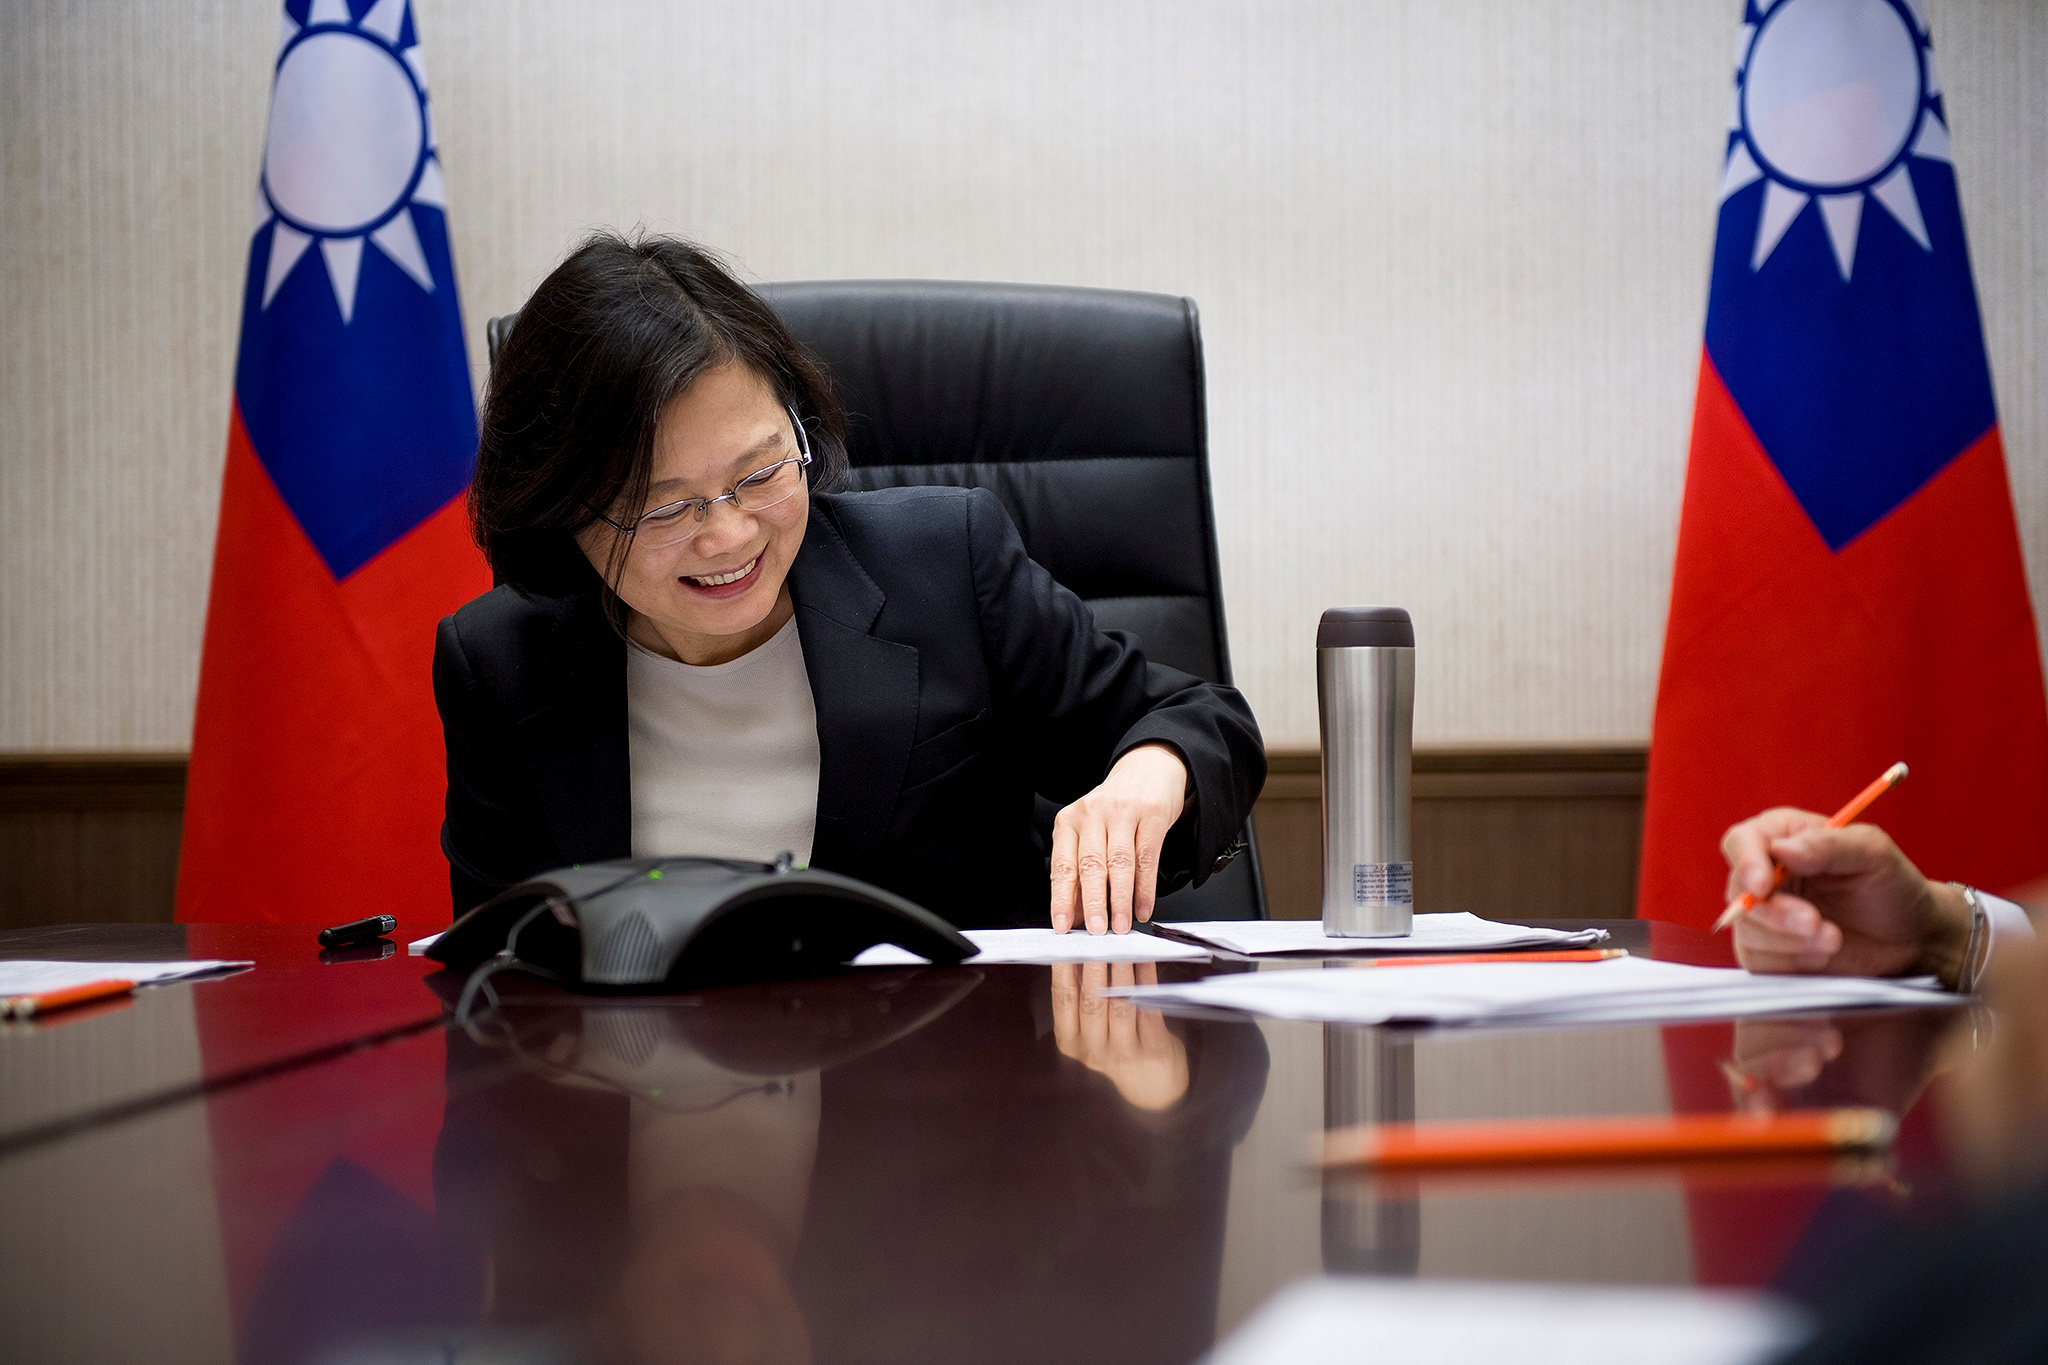 Taiwan's President Tsai Ing-wen speaks on the phone with U.S. President-elect Donald Trump at her office in Taipei, in this handout photo made available Dec. 3, 2016